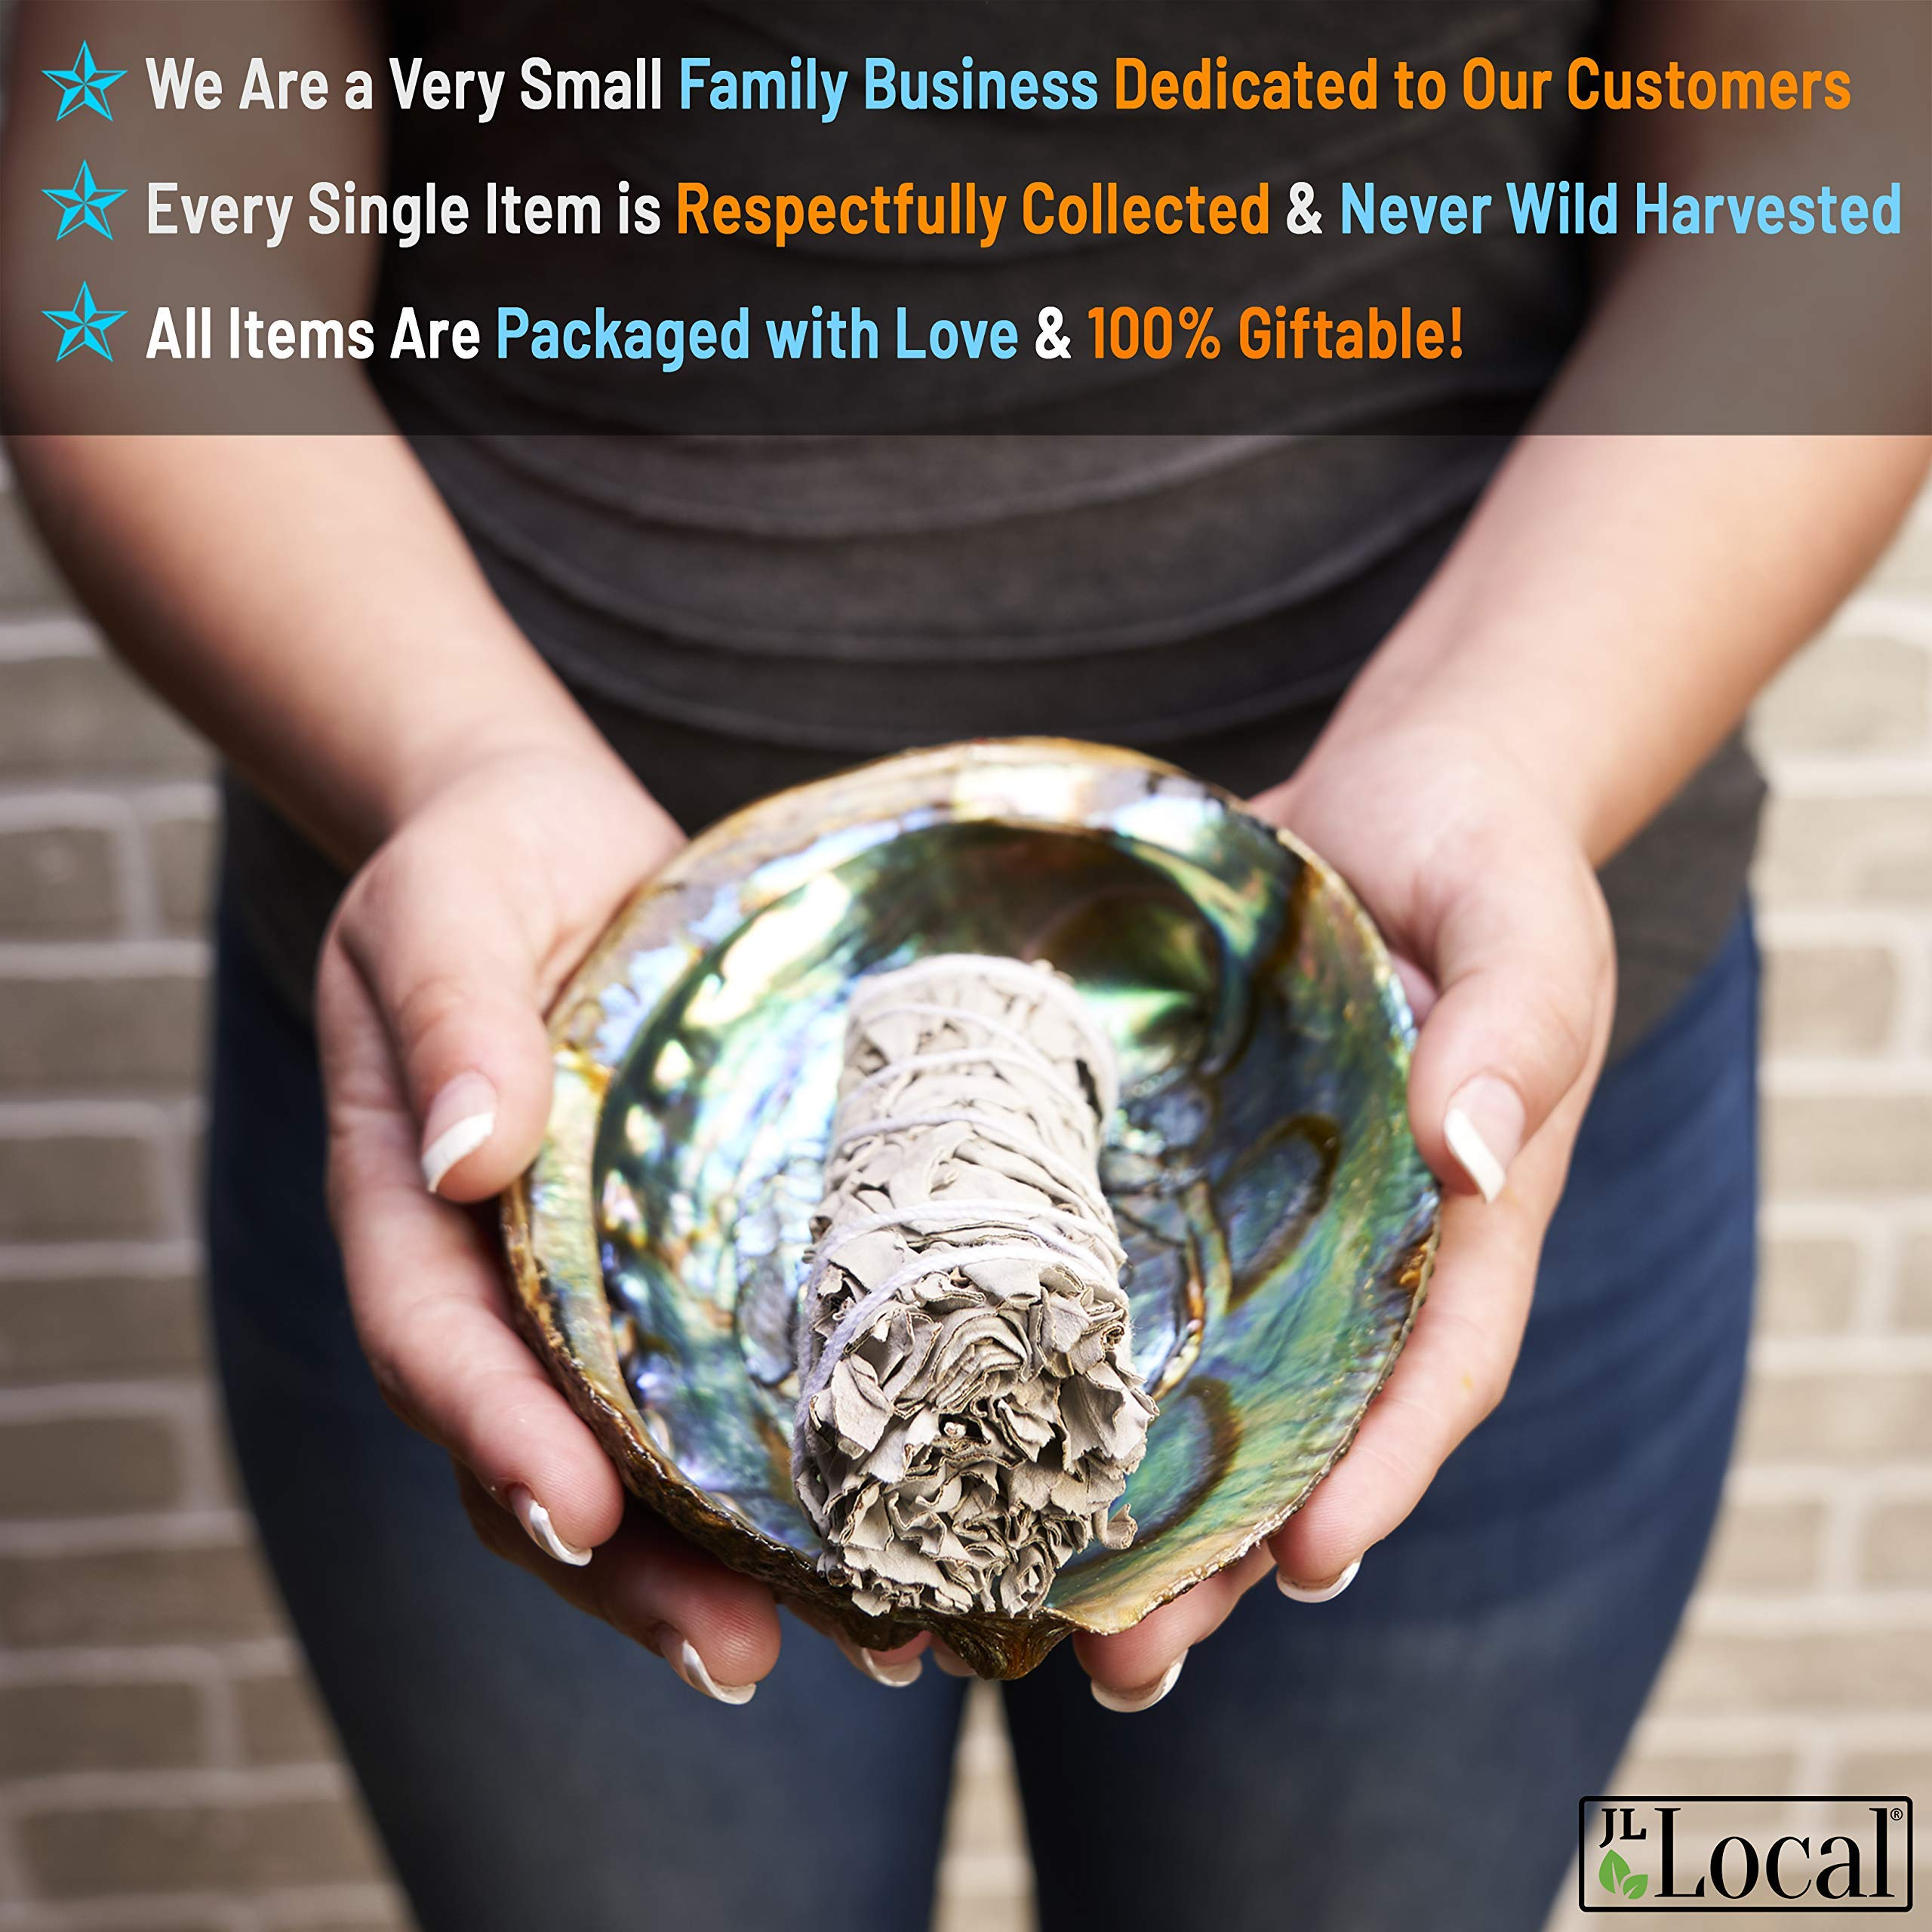 JL Local Chakra Smudging Kit - 10 Items Including White Sage Smudge Sticks, Palo Santo, Amethyst, Rose Quartz, Abalone Shell, Stand & Gift by JL Local (Image #6)